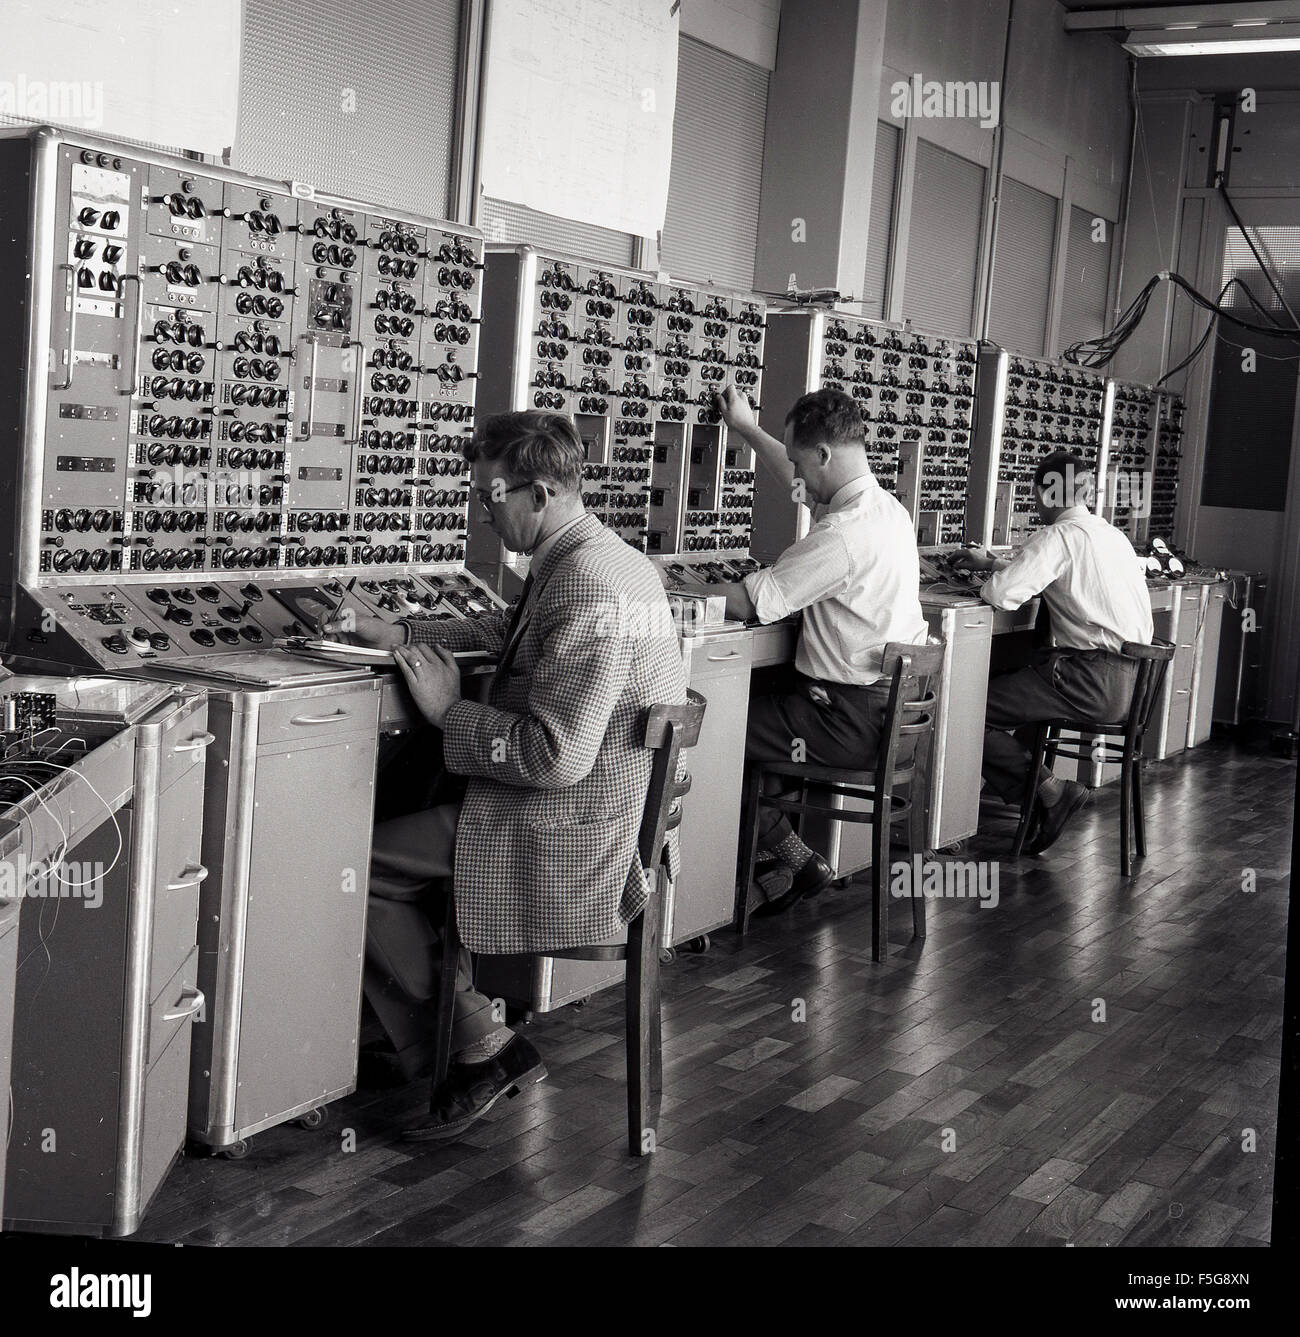 historical, 1950s, technical engineering students at work. - Stock Image